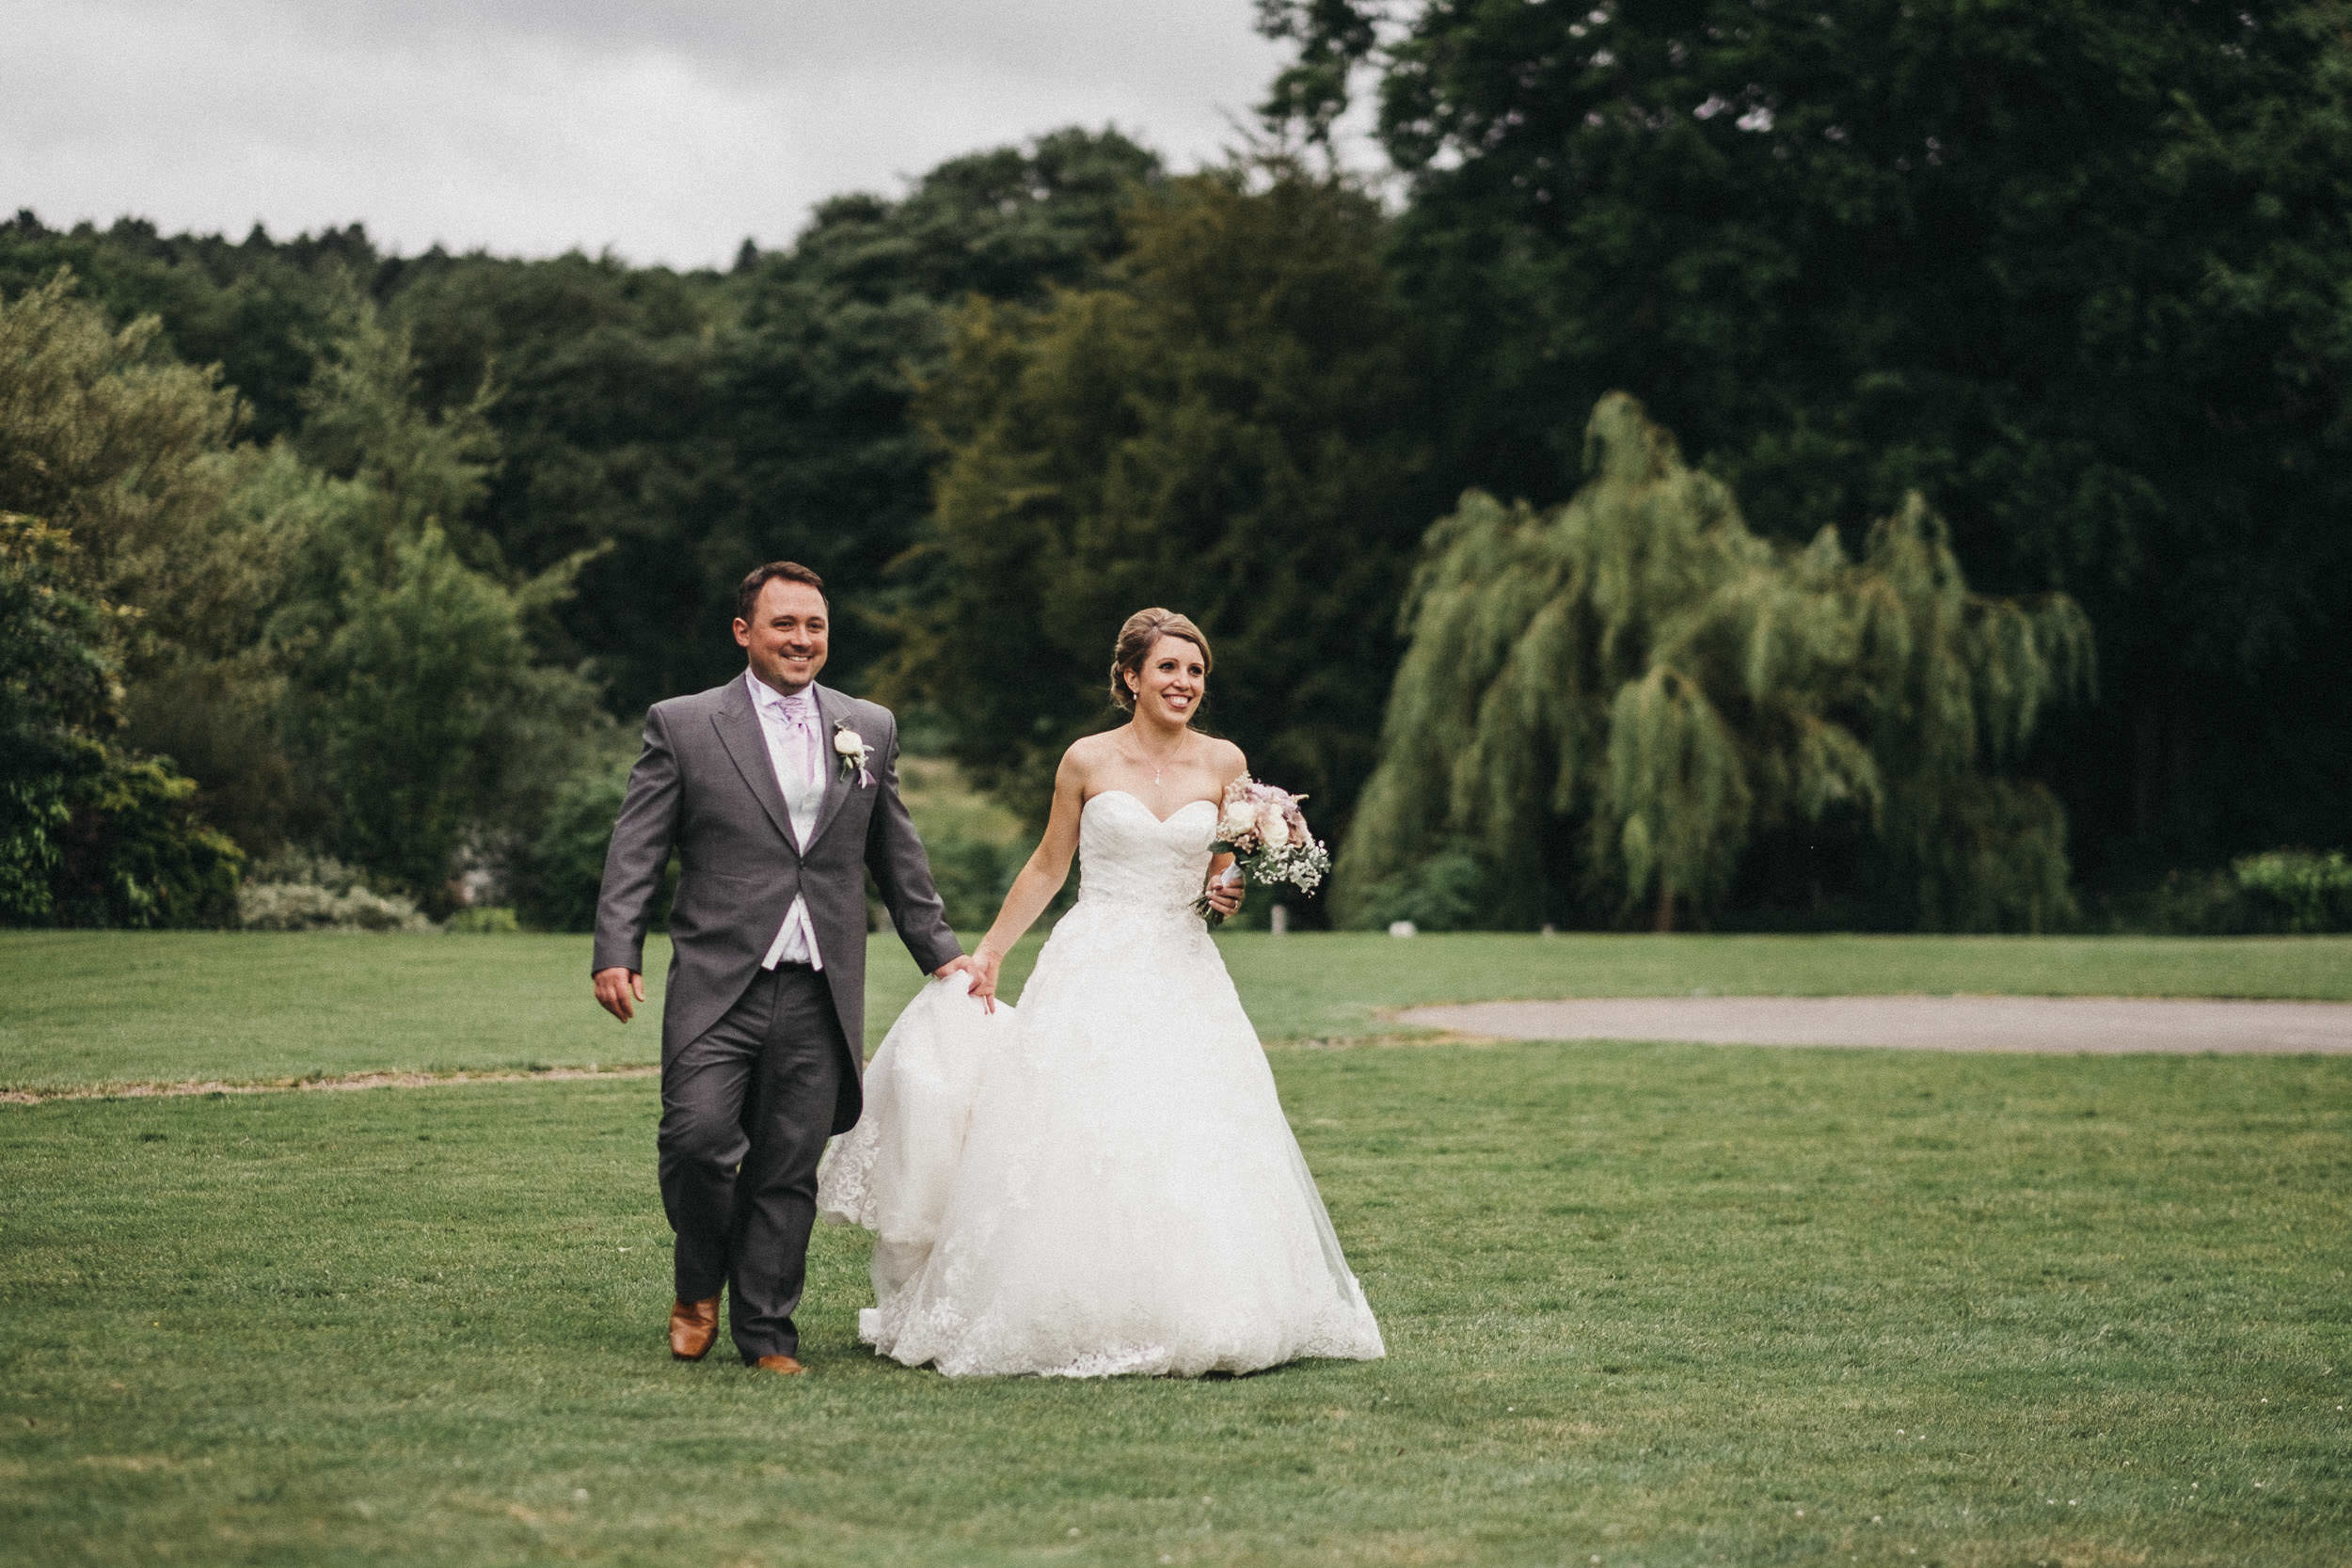 Bride and groom laugh as they walk across grounds of Yorkshire wedding venue